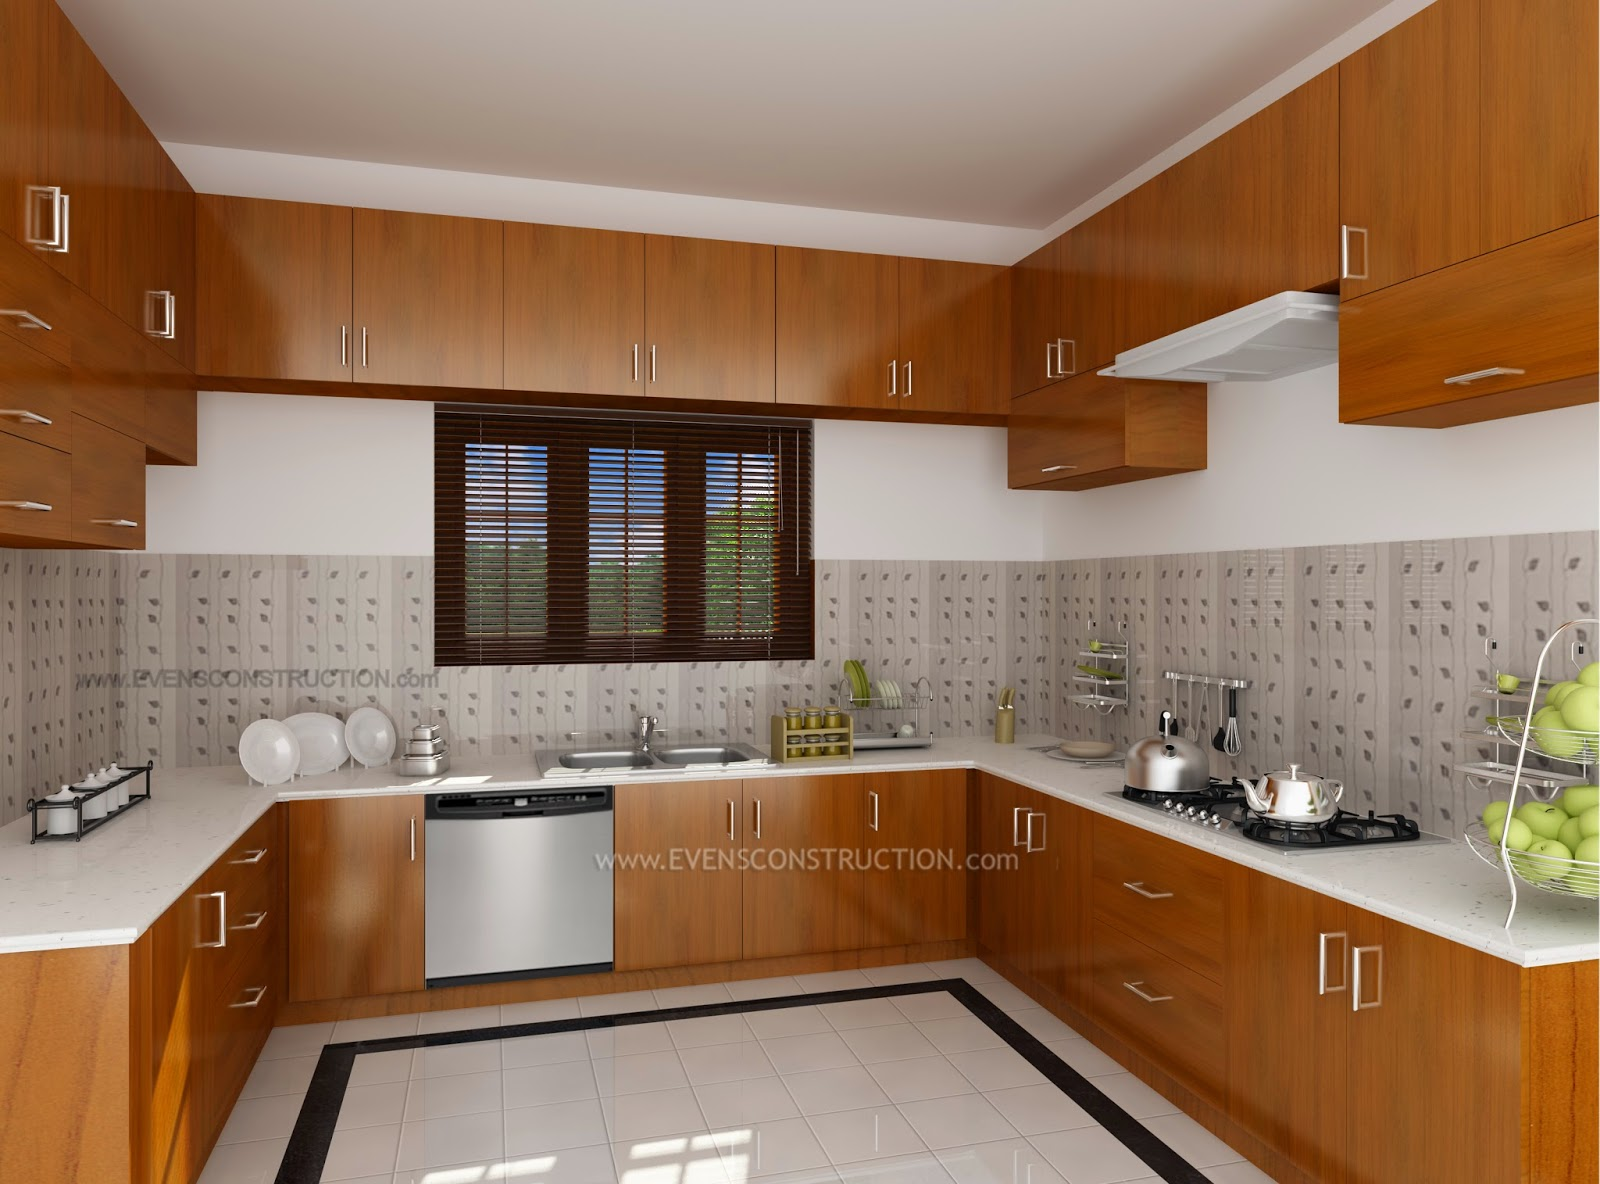 Evens construction pvt ltd october 2014 - Interior designs of houses and kitchens ...